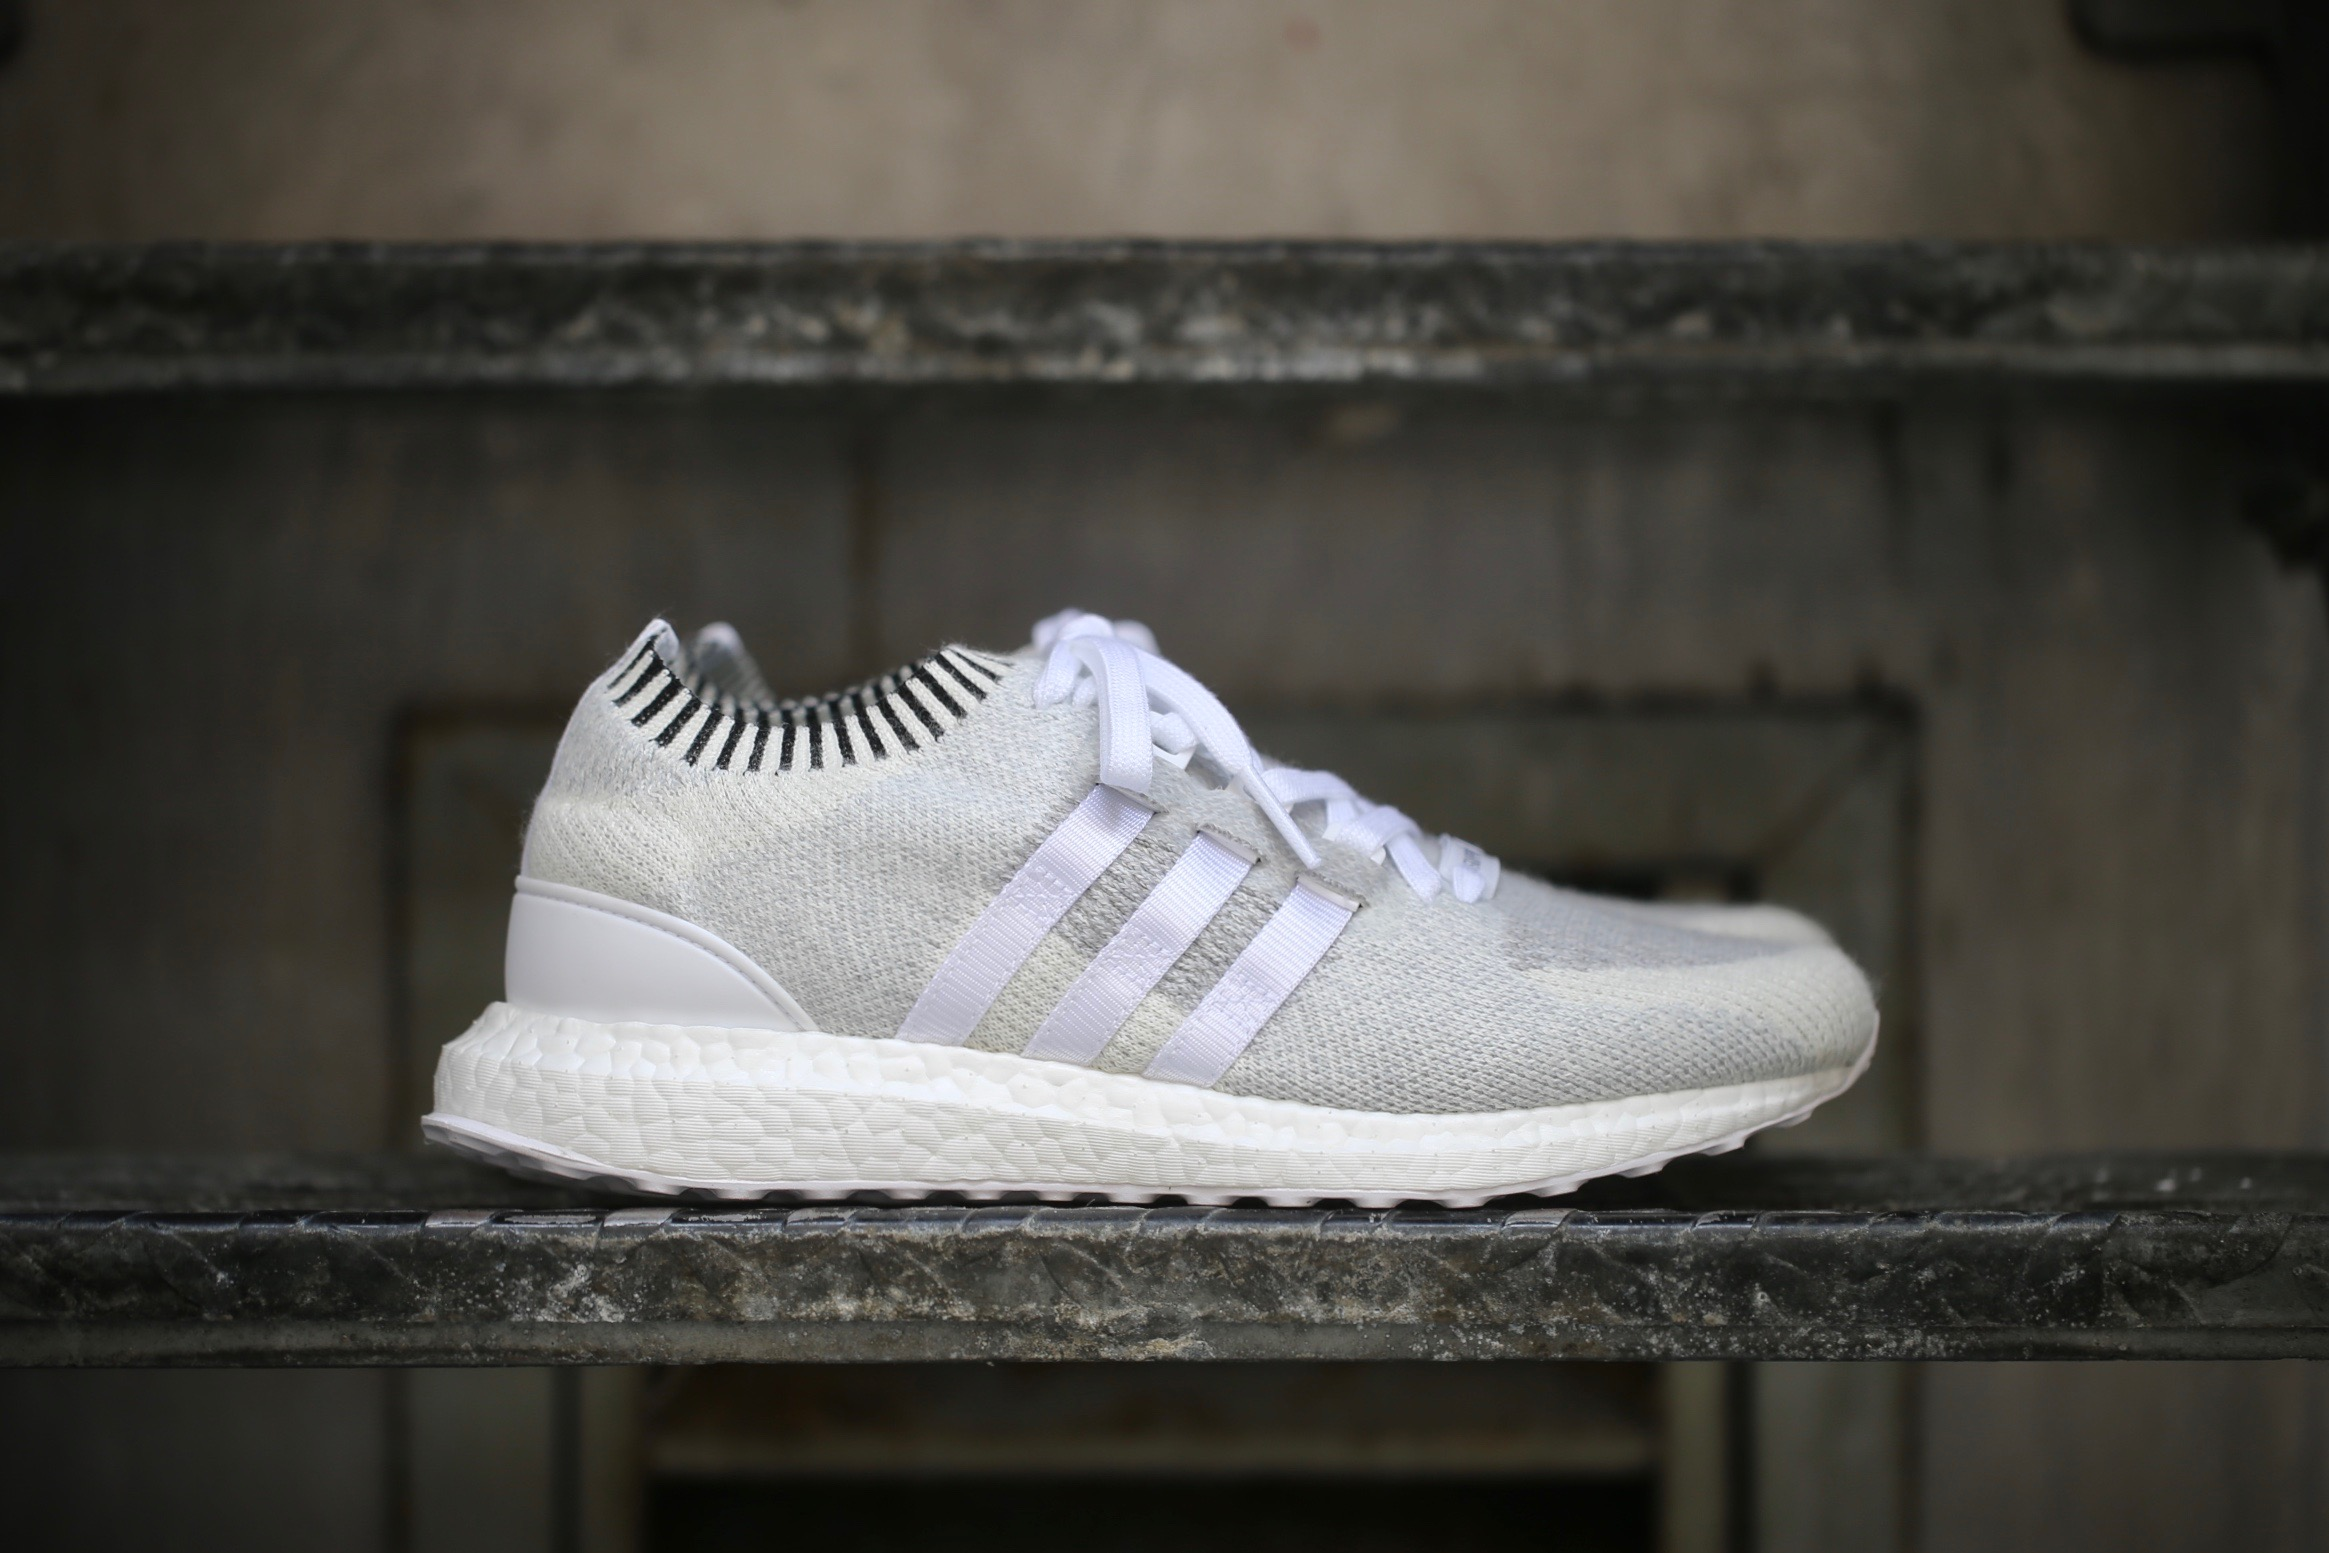 sale retailer 901f4 9b755 adidas Originals EQT Support Ultra PK - Vintage White / Ftwr White / Core  Black